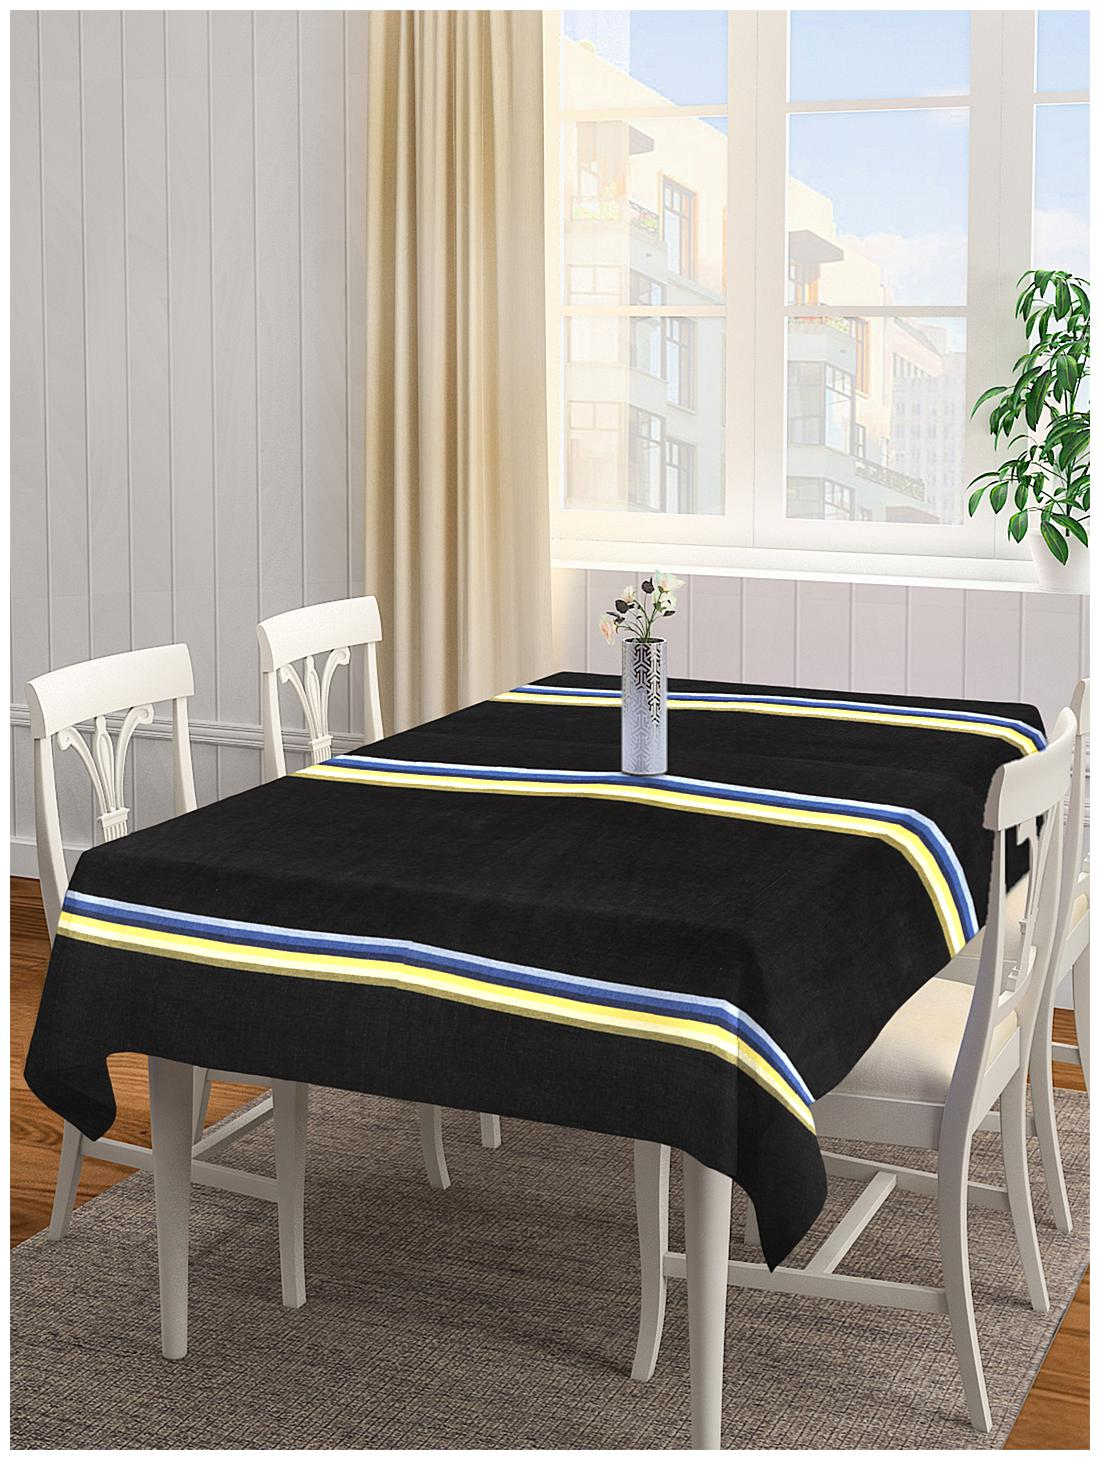 NEUDIS by Dhrohar Premium Cotton Striped Table Cover For 6 Seater Table